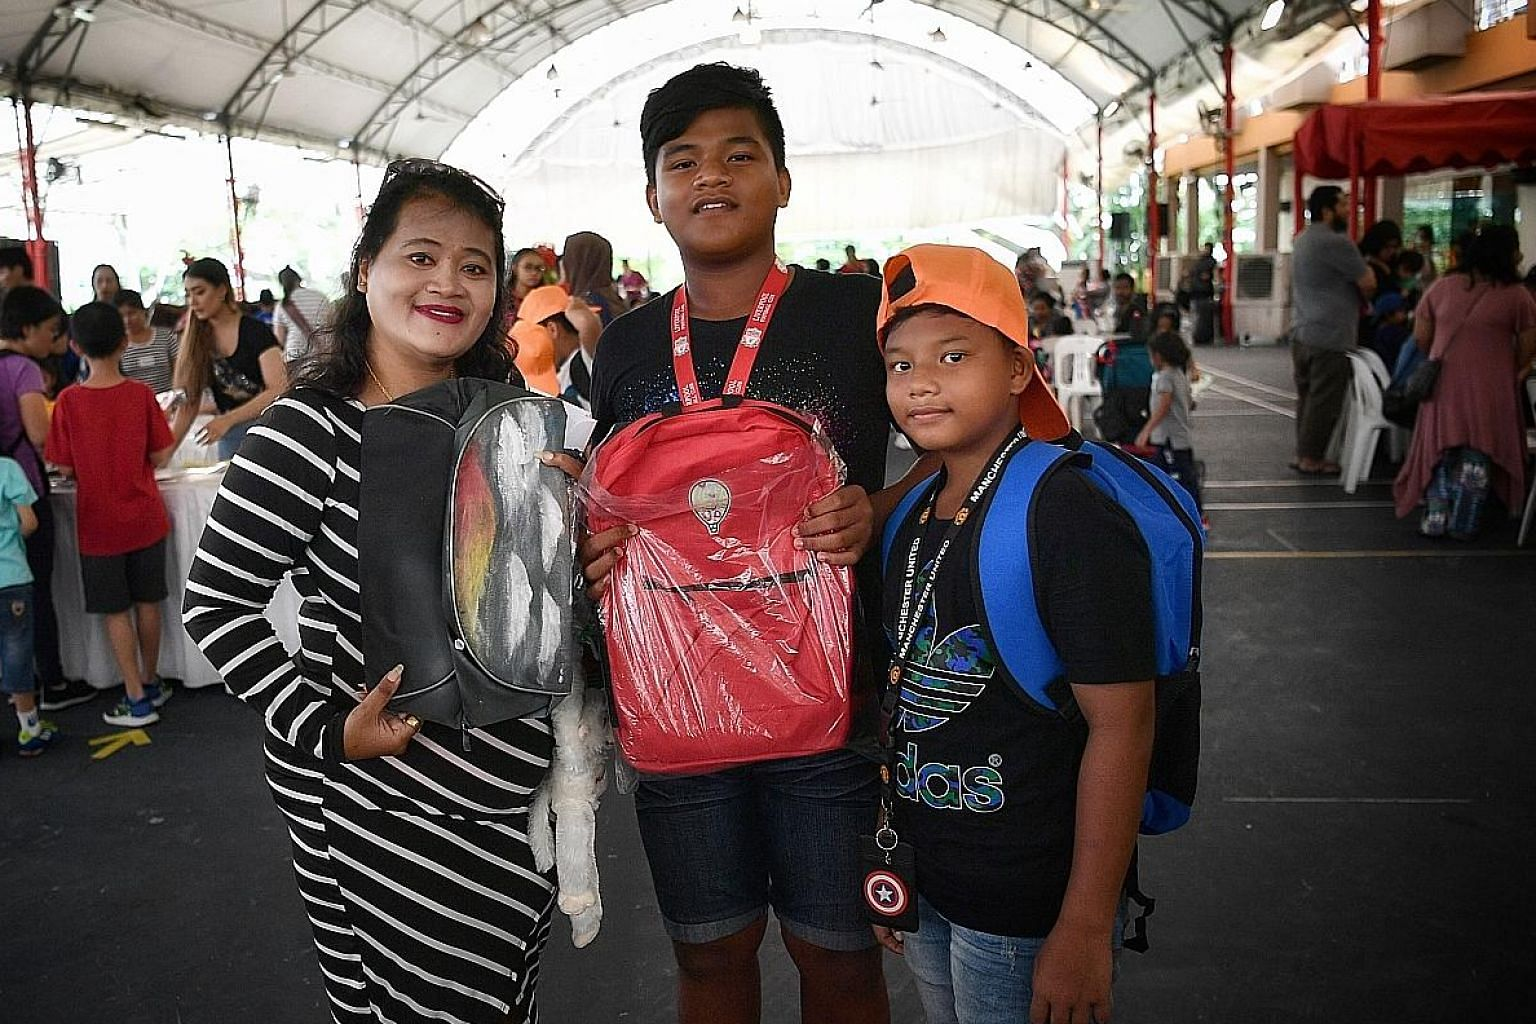 Madam Animaton Mohd Tahil and two of her sons, Mohammad Danial, 13, and Mohammad Diniy, 11. The boys were among 166 students who received support under the Pack My Backpack initiative.